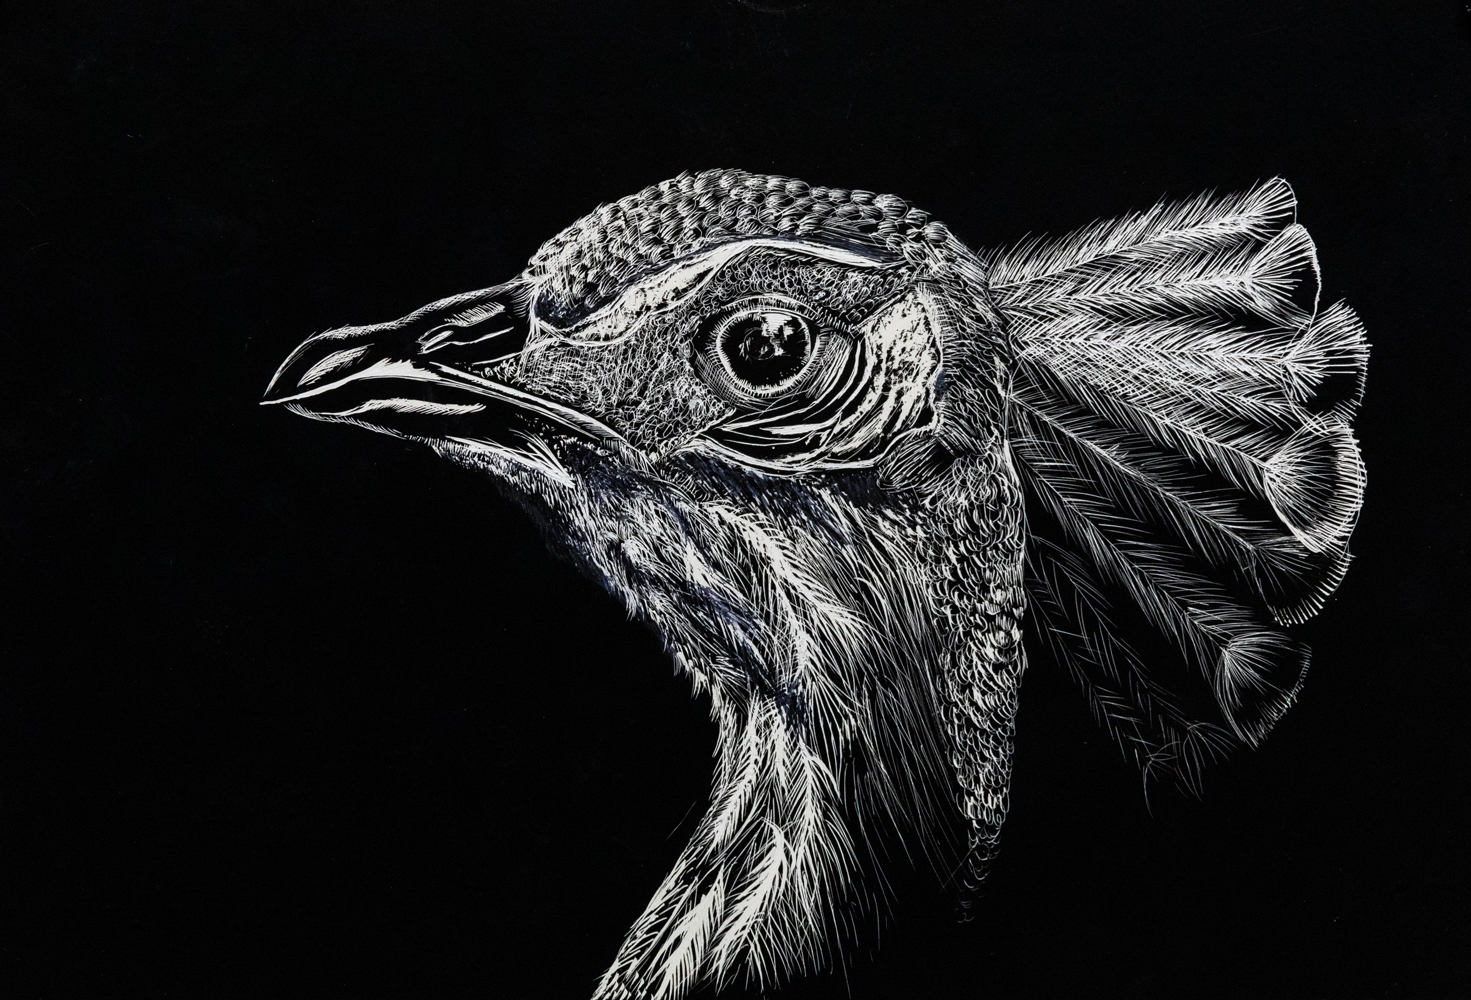 38. Isabella Guilbert, 'Peacock study', scratch board, Year 9, Armidale Secondary College